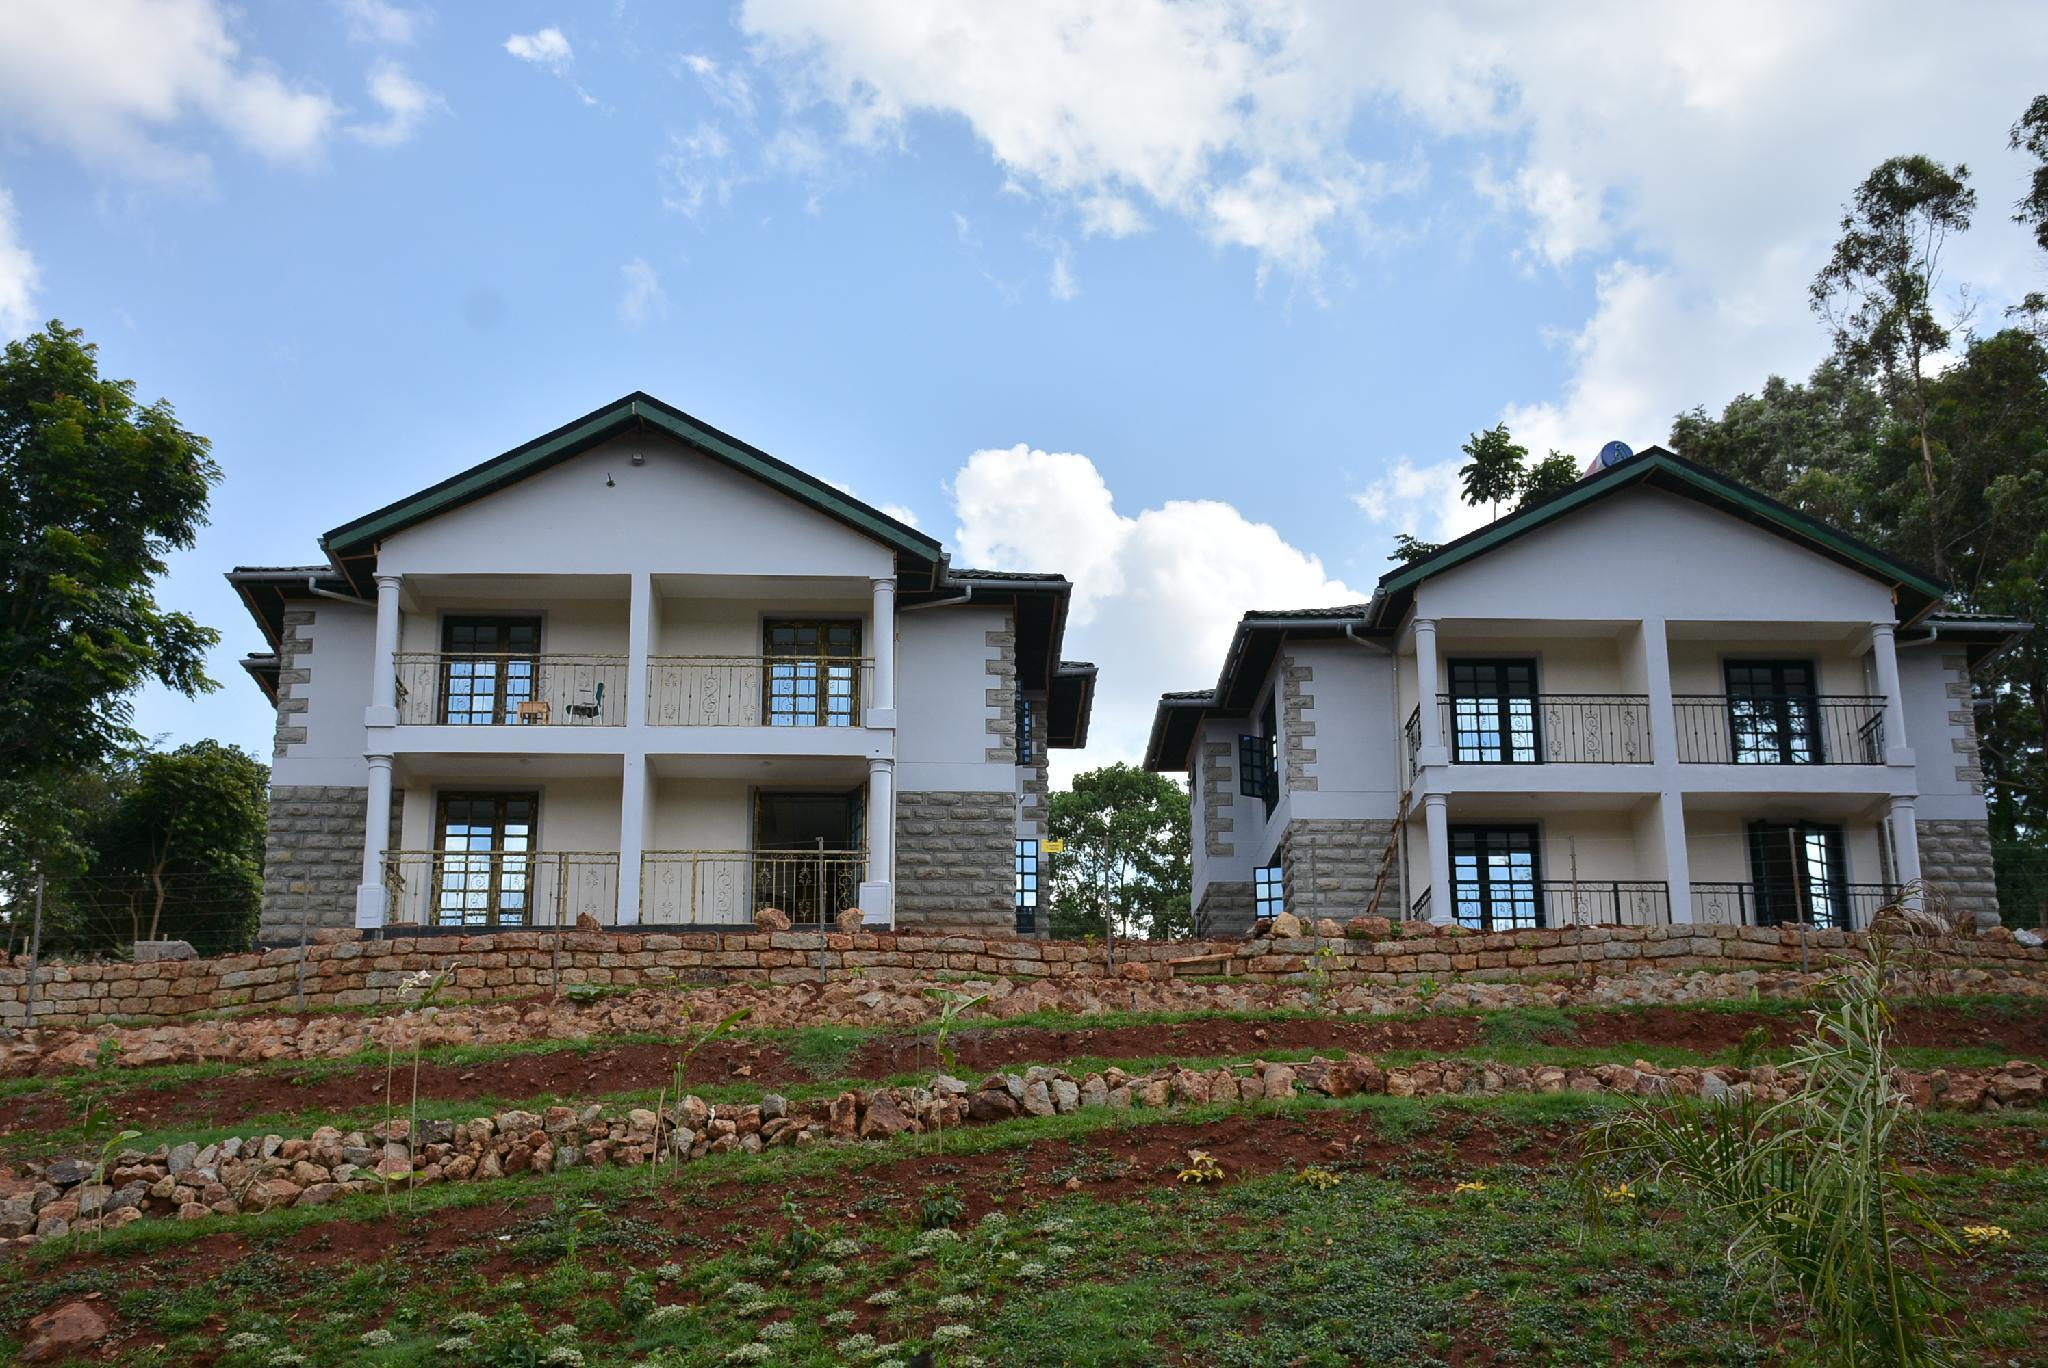 BUBBLES HOTEL, Thika Town